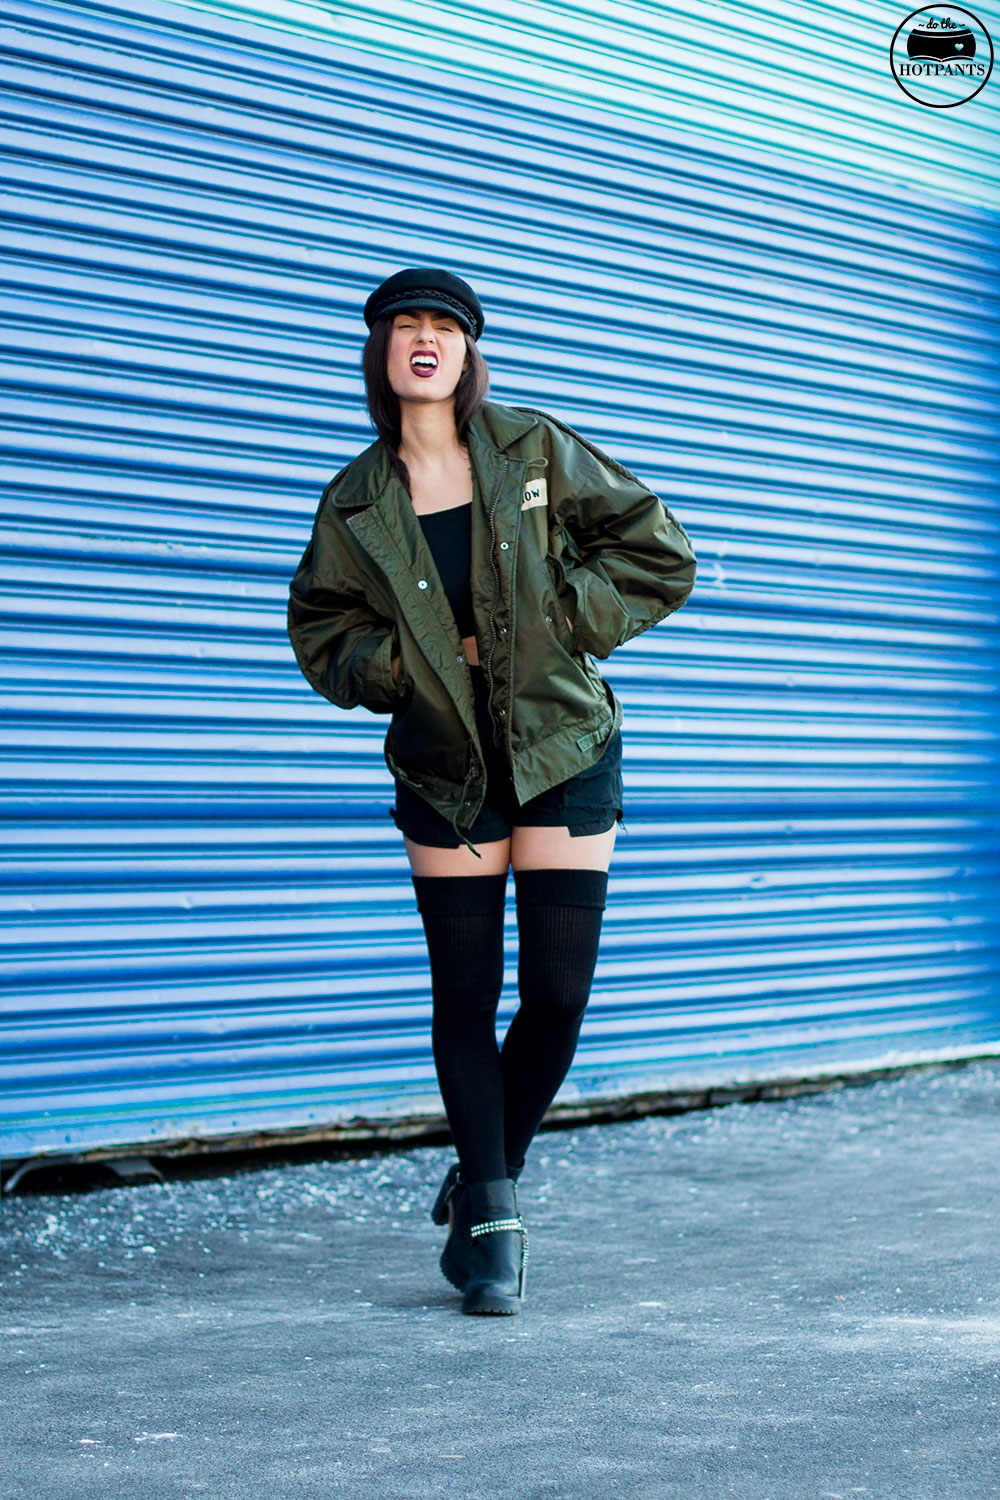 Do The Hotpants Dana Suchow Bomber Jacket Crop Top Thigh Highs Curvy Woman NYC Fashion IMG_8002